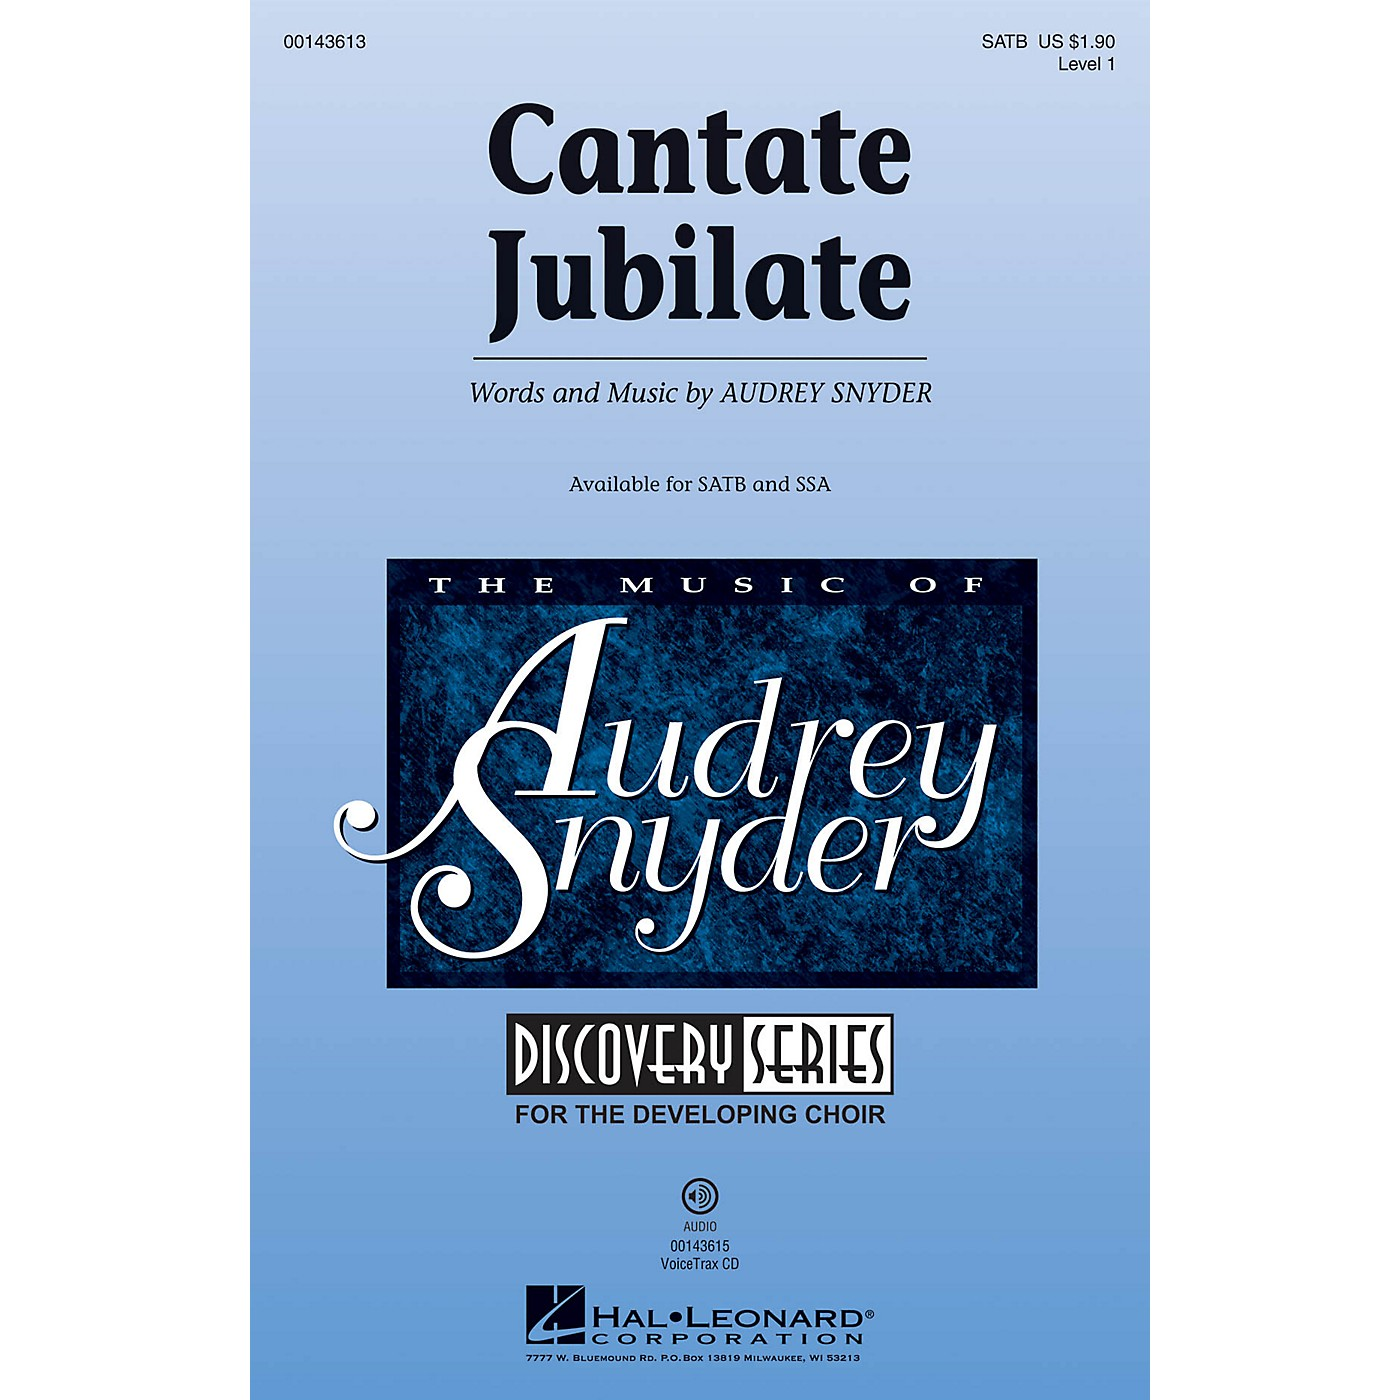 Hal Leonard Cantate Jubilate (Discovery Level 1) SATB composed by Audrey Snyder thumbnail